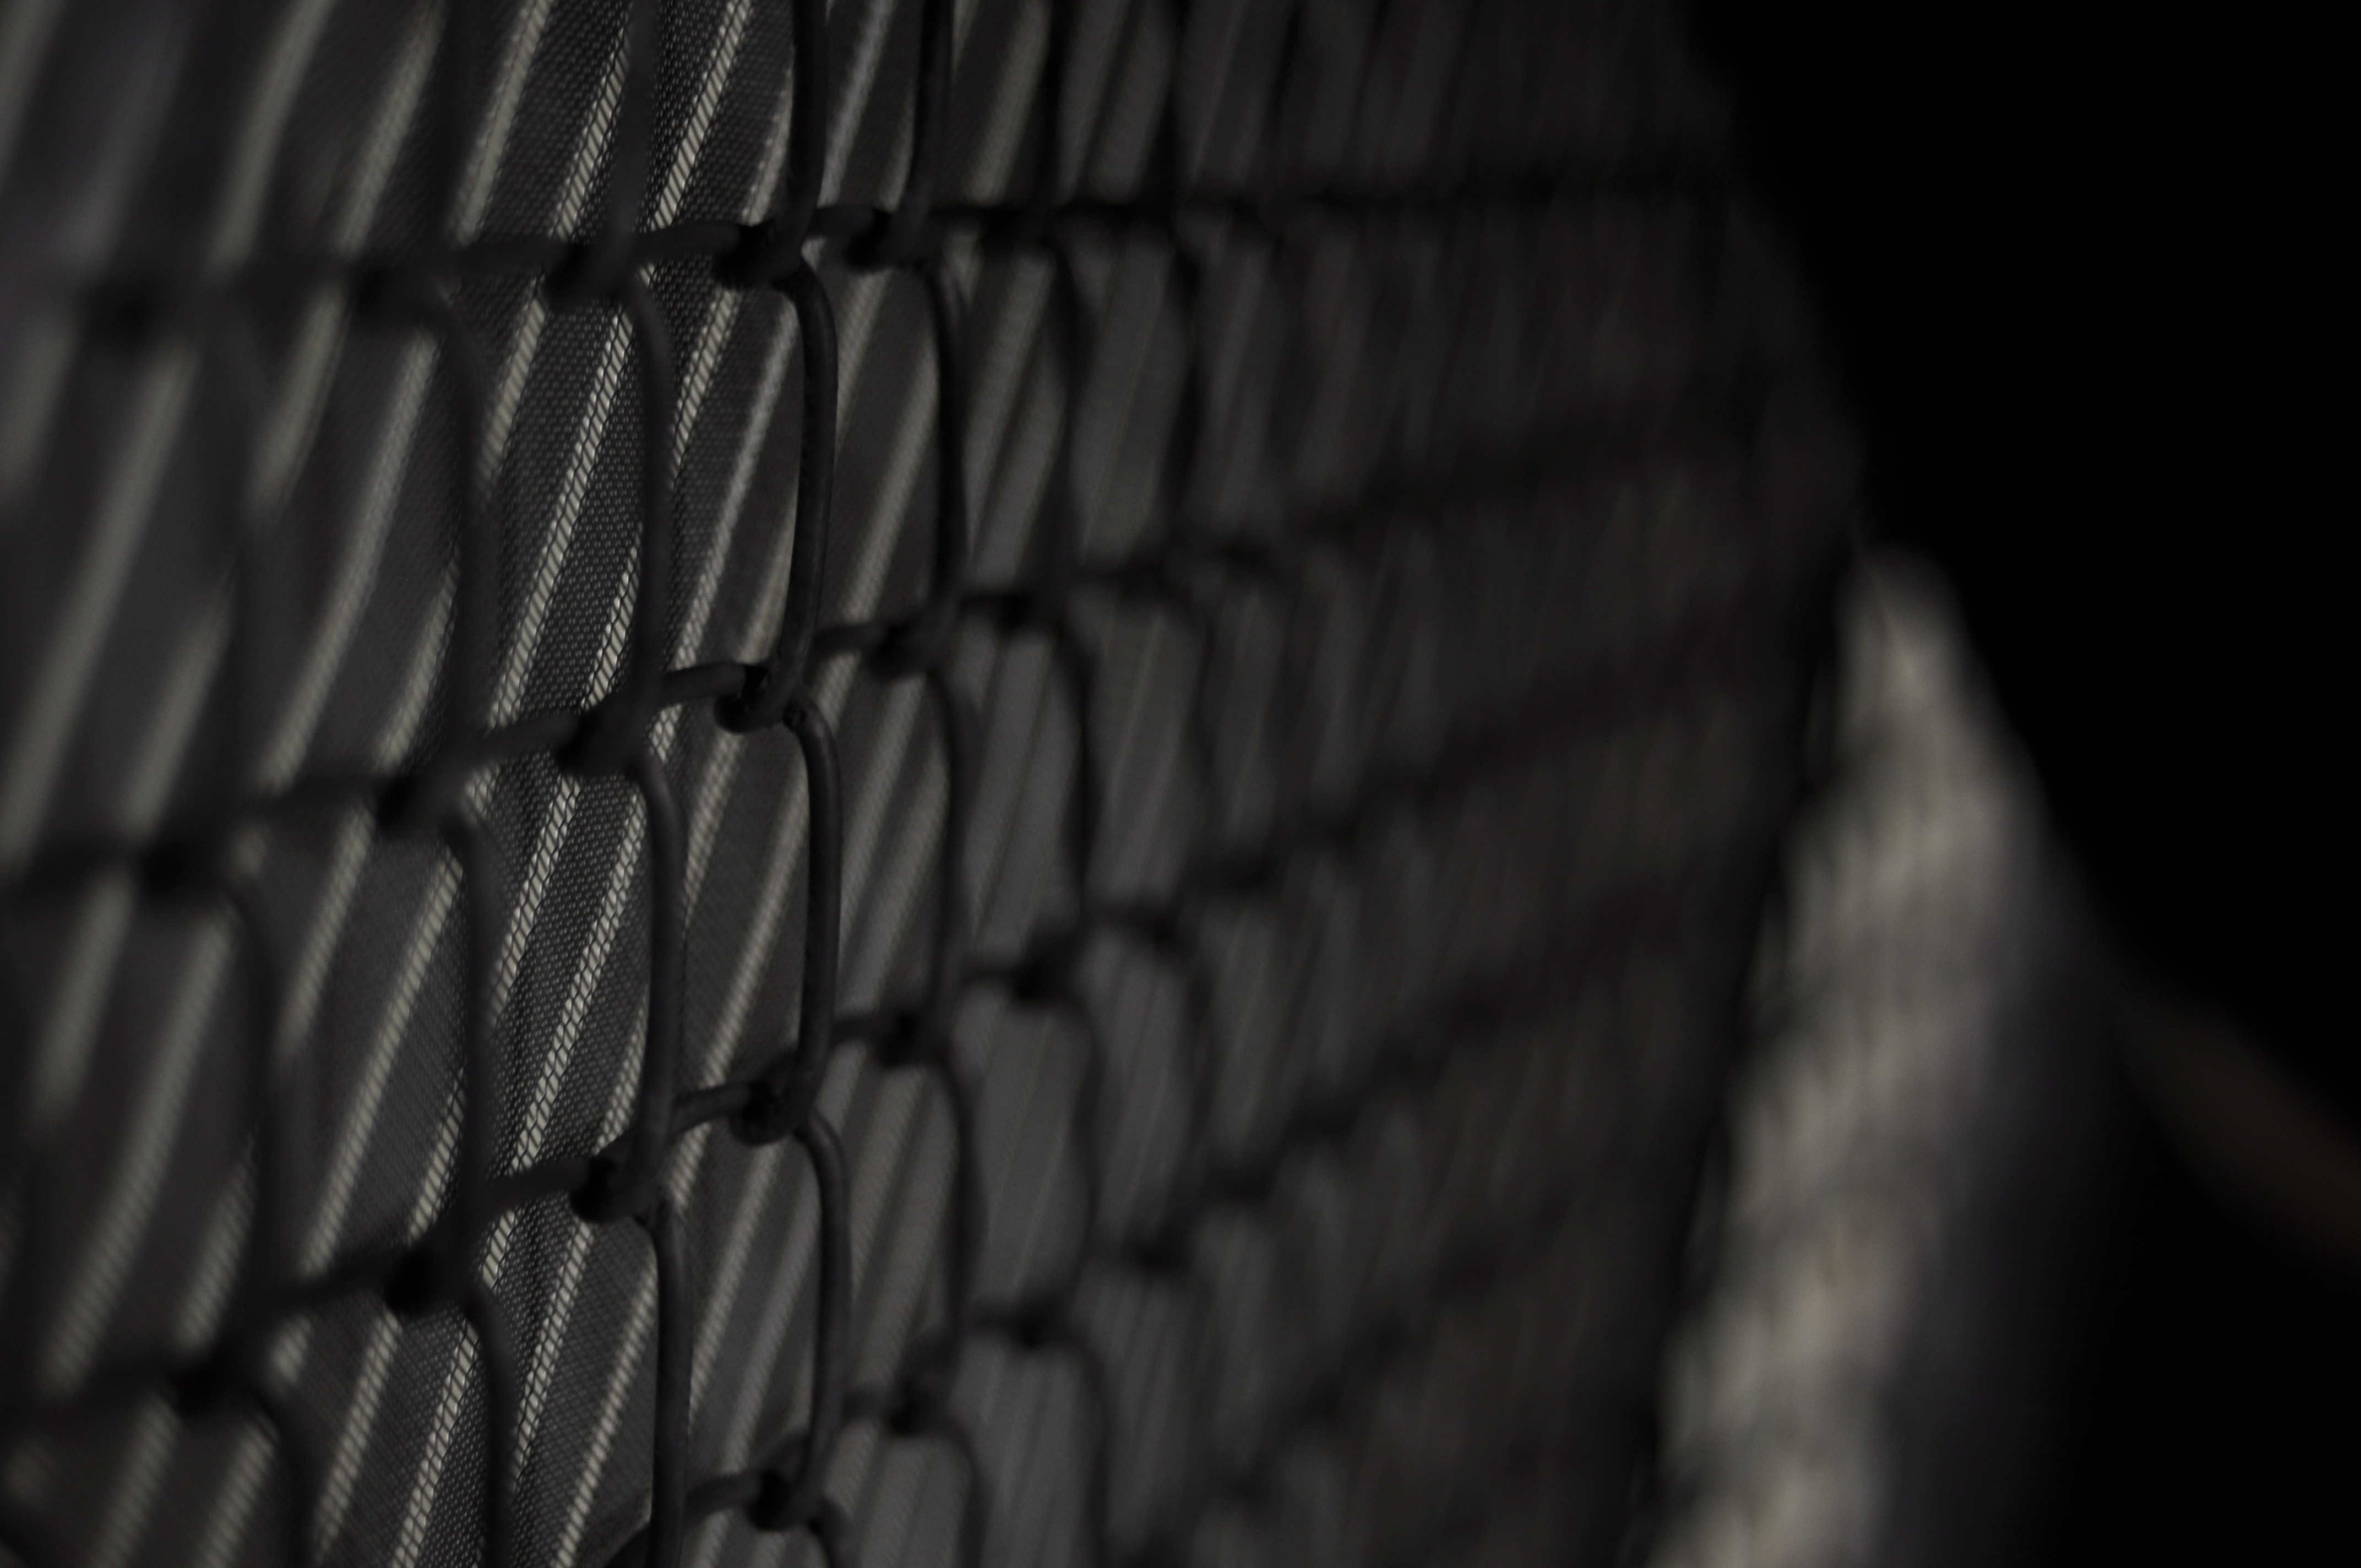 chain link fence wallpaper. Grayscale, Monochrome, Chain Link Fence - Free Wallpaper / WallpaperJam.com